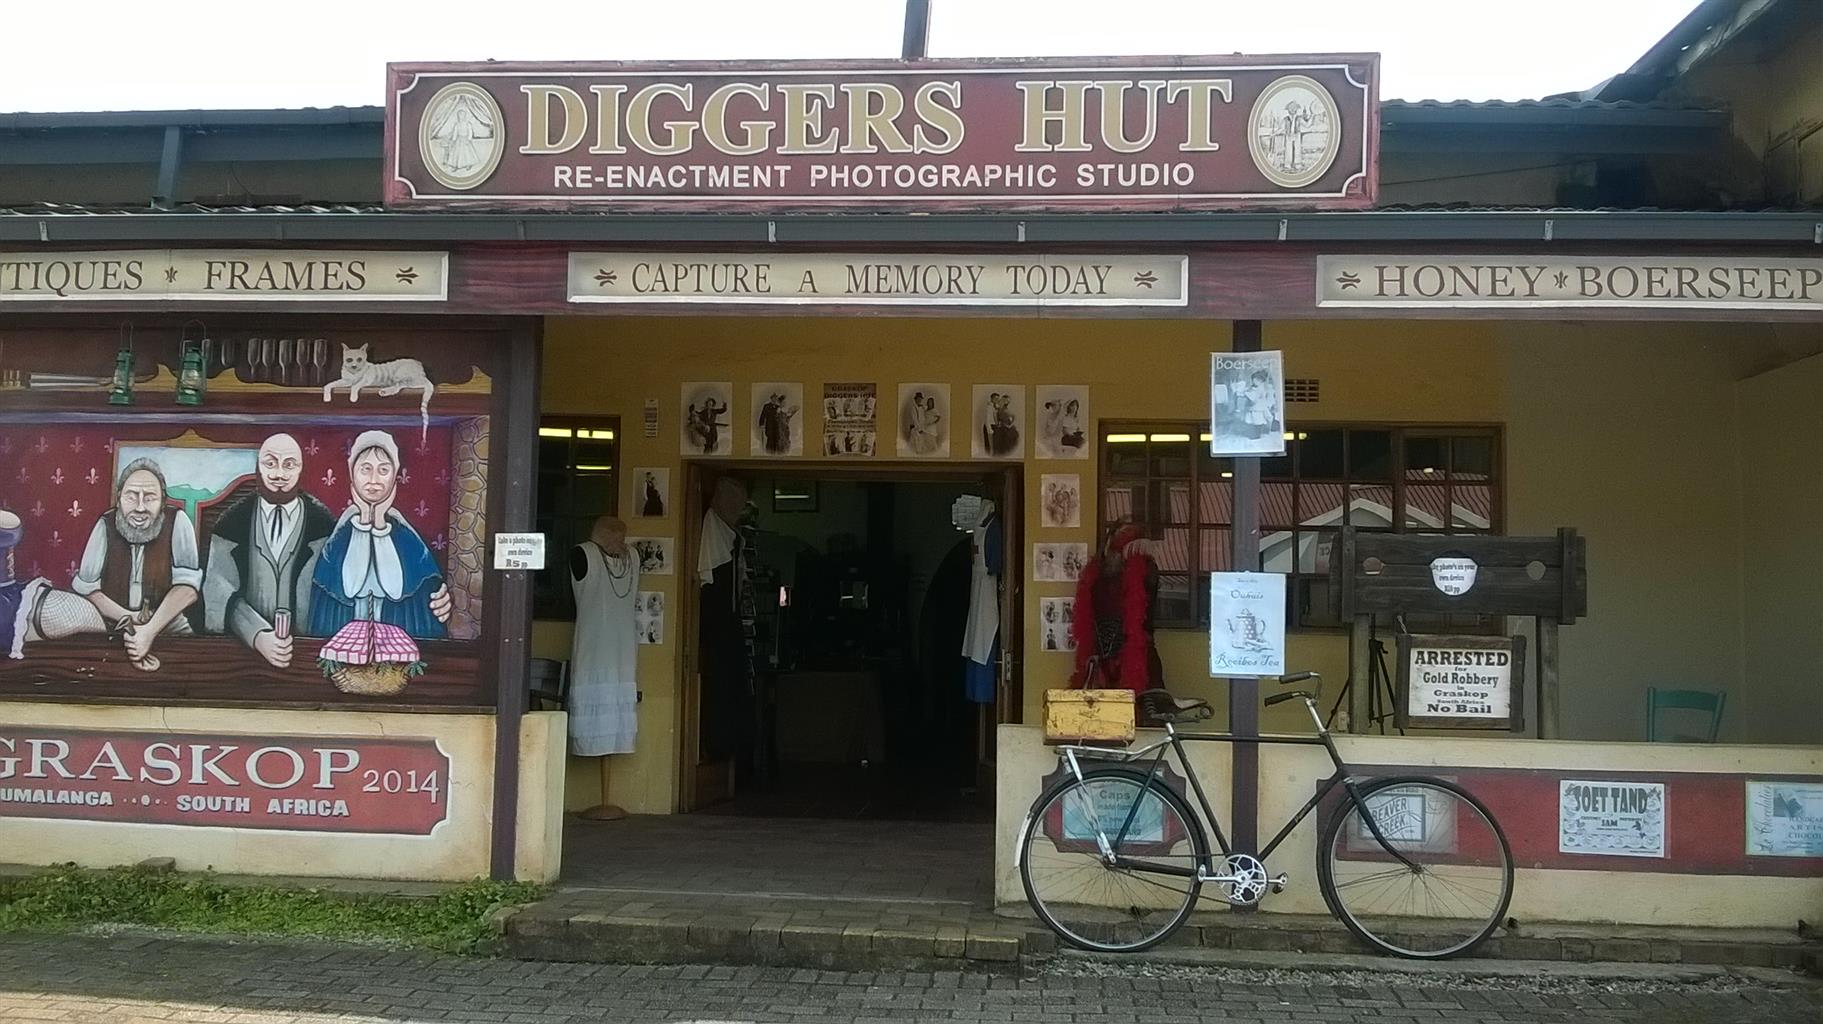 PHOTOGRAPHIC AND ANTIQUE BUSINESS IN GRASKOP